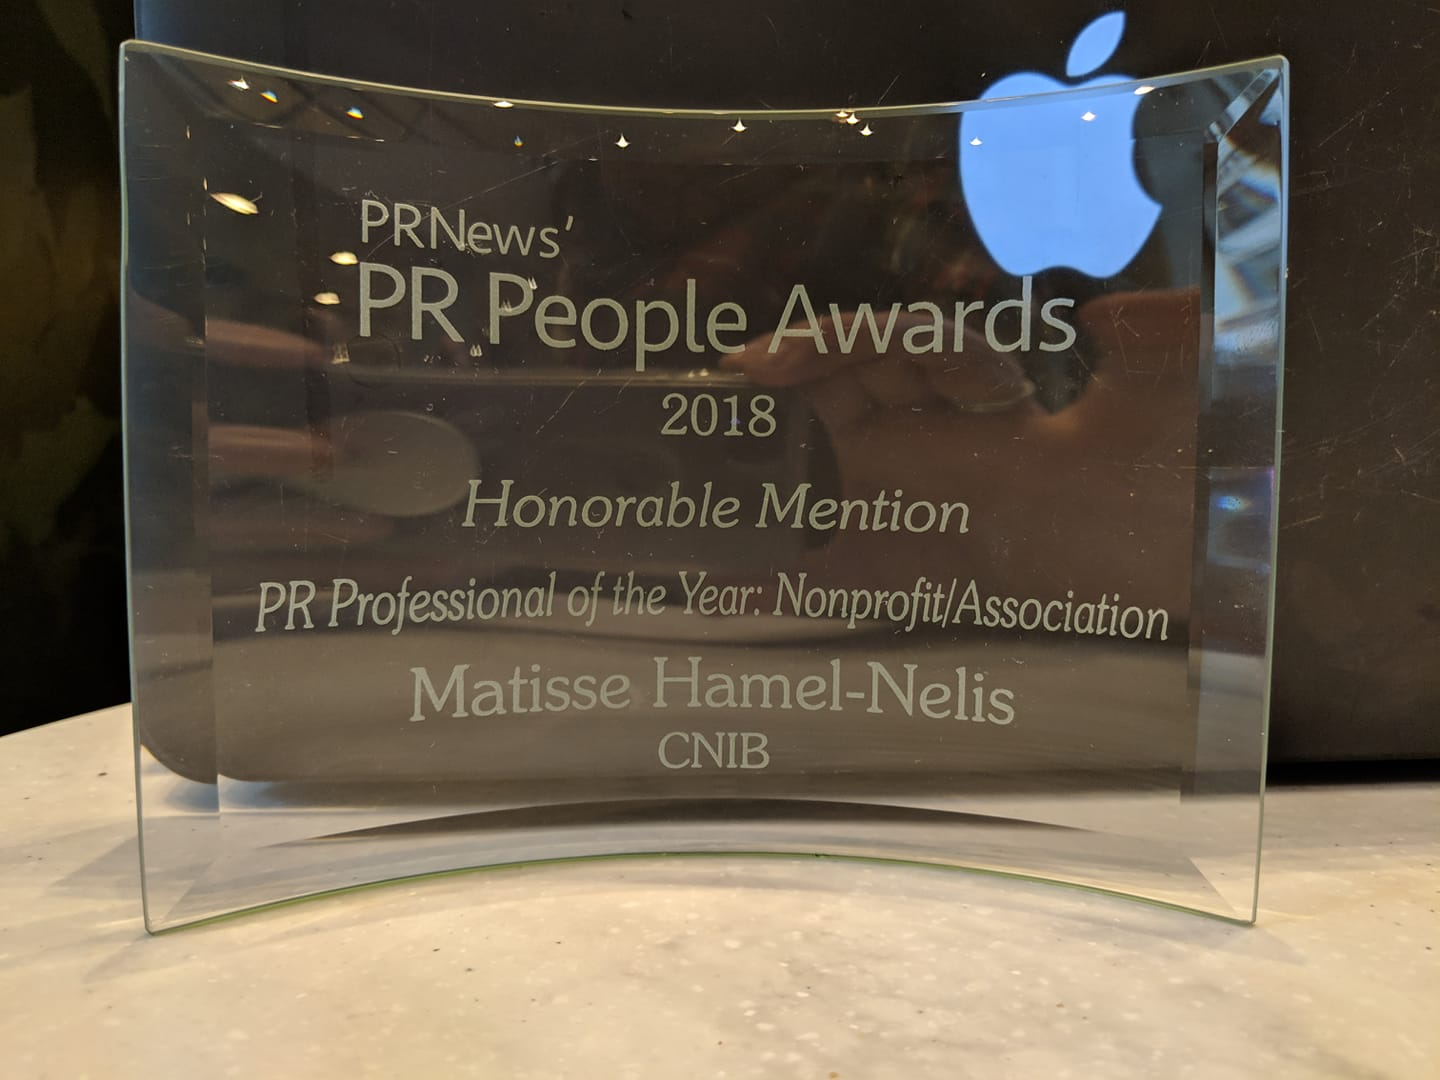 """A curved glass plaque with engraved text: """"PR News' - PR People Awards 2018 - Honourable Mention - PR Professional of the Year: Nonprofit/Association - Matisse Hamel-Nelis - CNIB"""""""